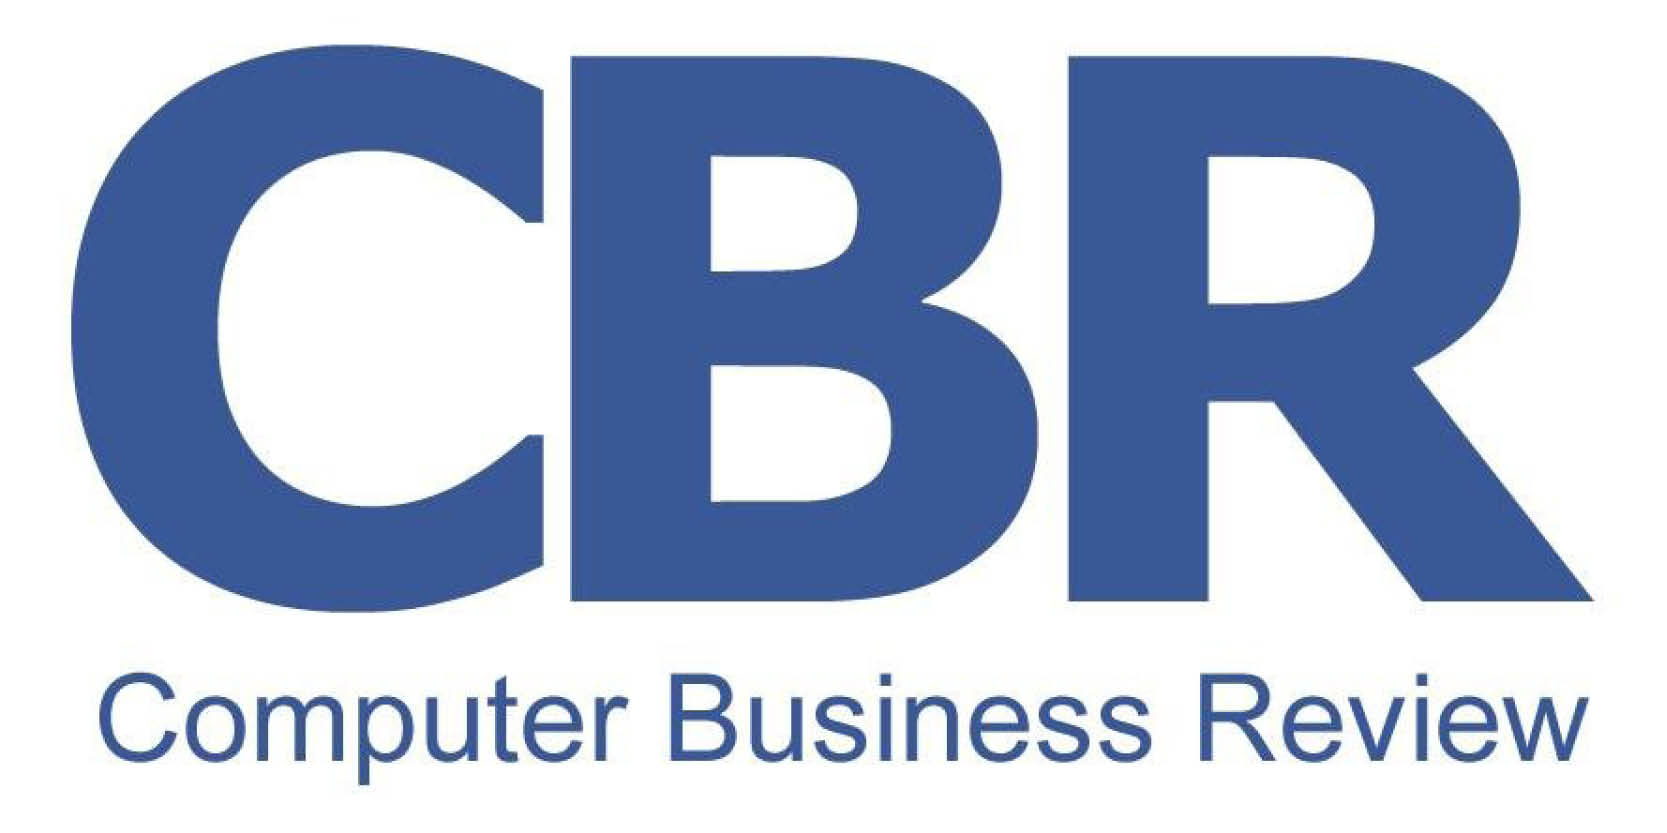 CBR: 5.5 million employee credentials are available online from world's largest companies